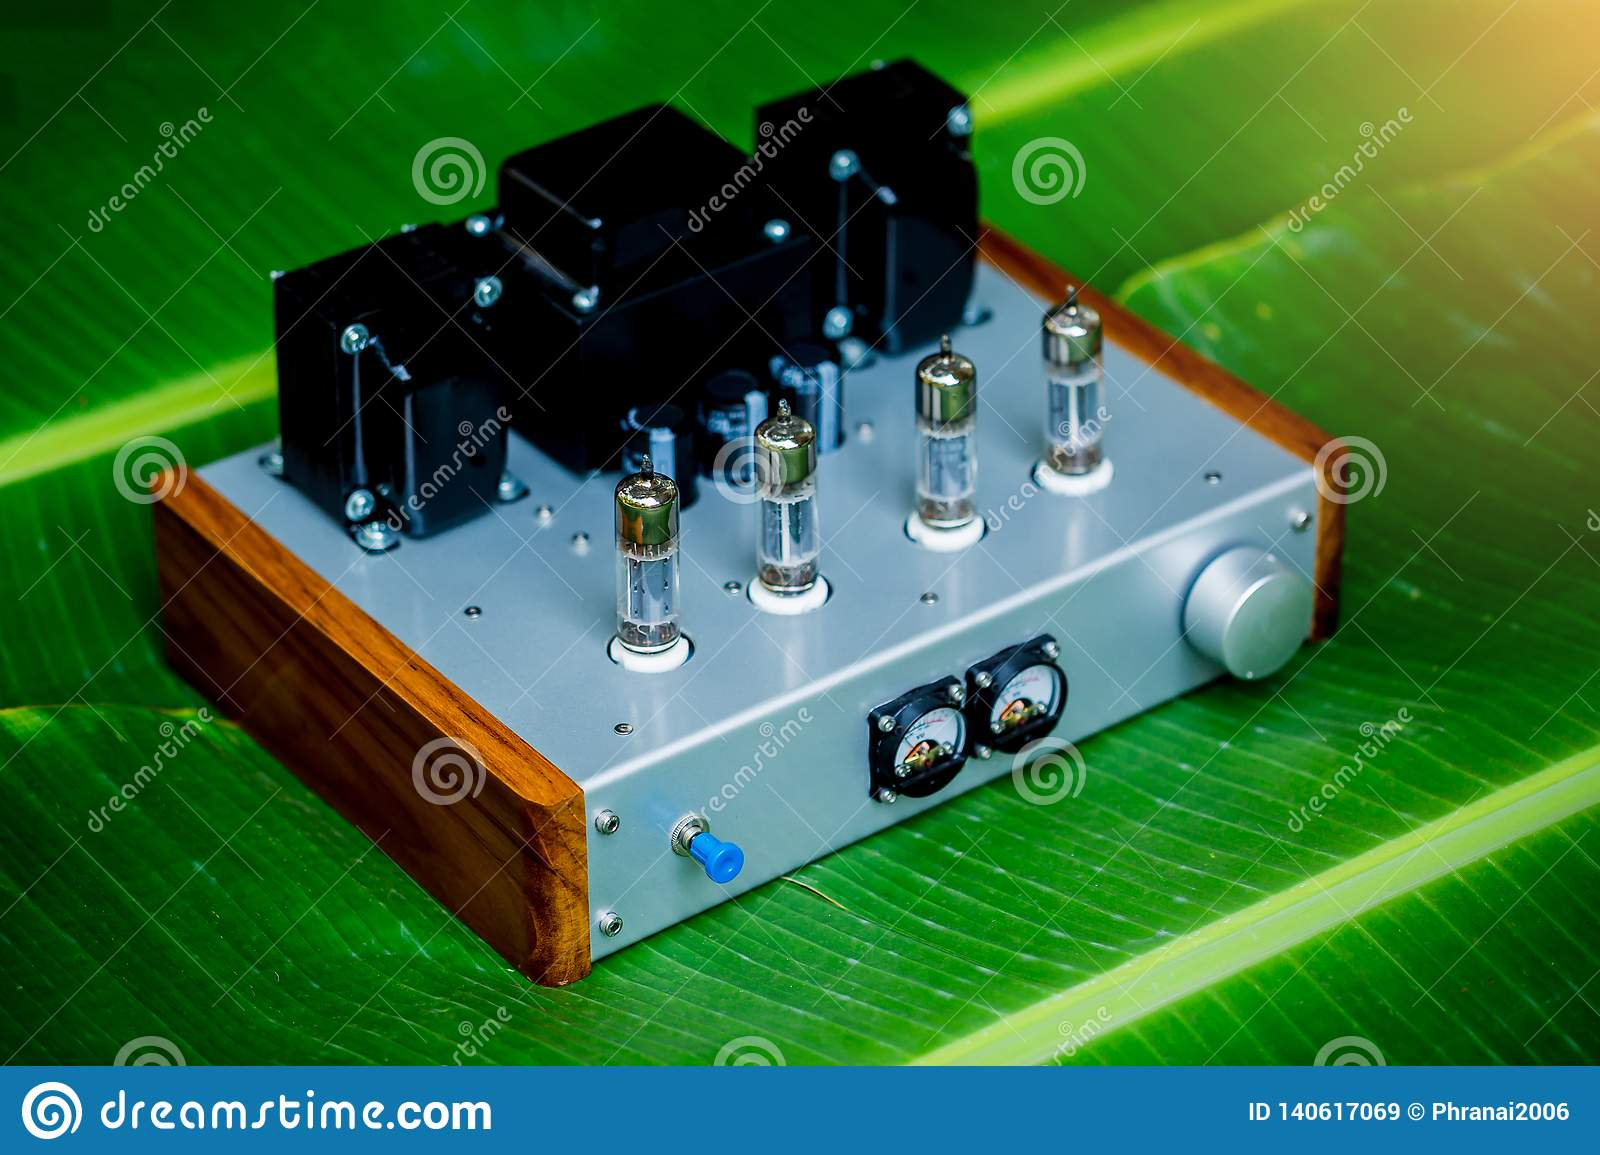 Old-fashioned Electronic Device Amplifier With Glowing Bulb